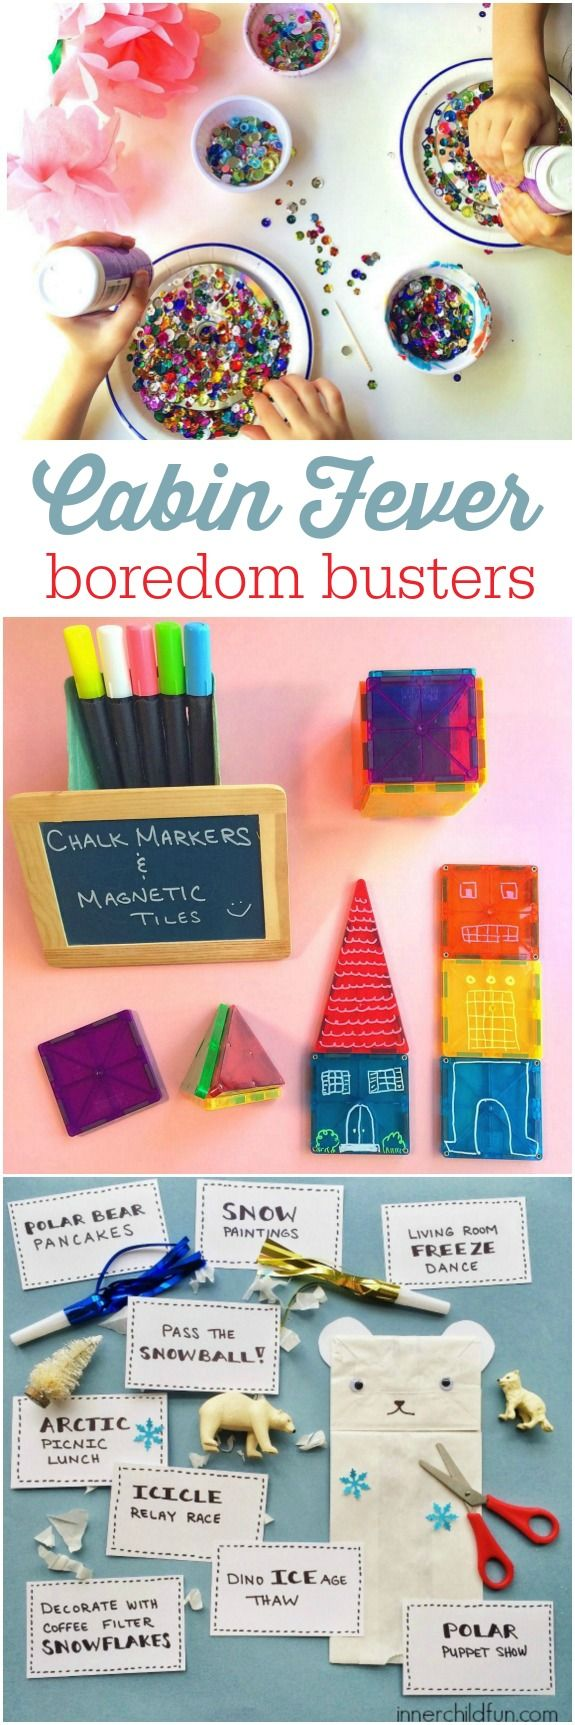 Cabin Fever Boredom Busters